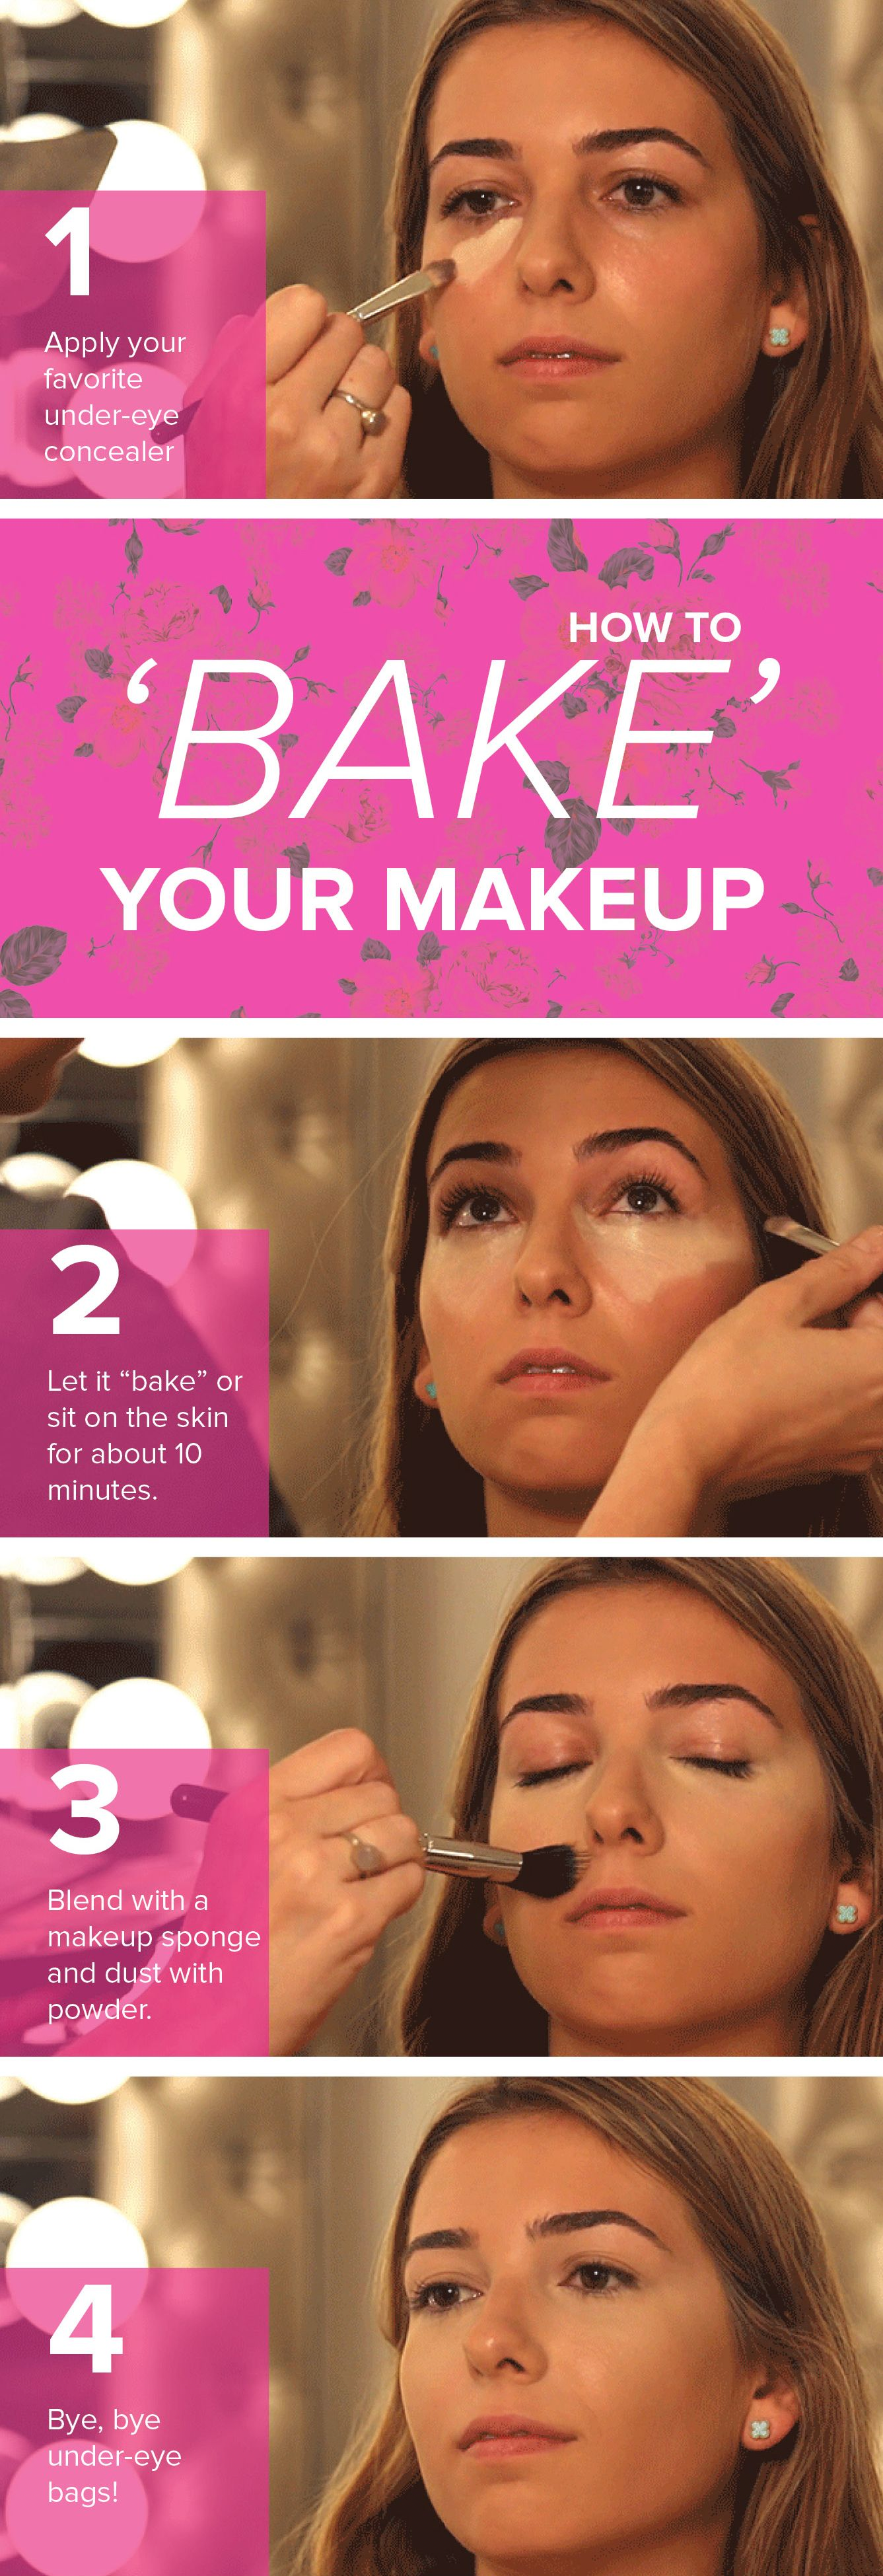 Here's what 'baking' has to do with your daily makeup routine